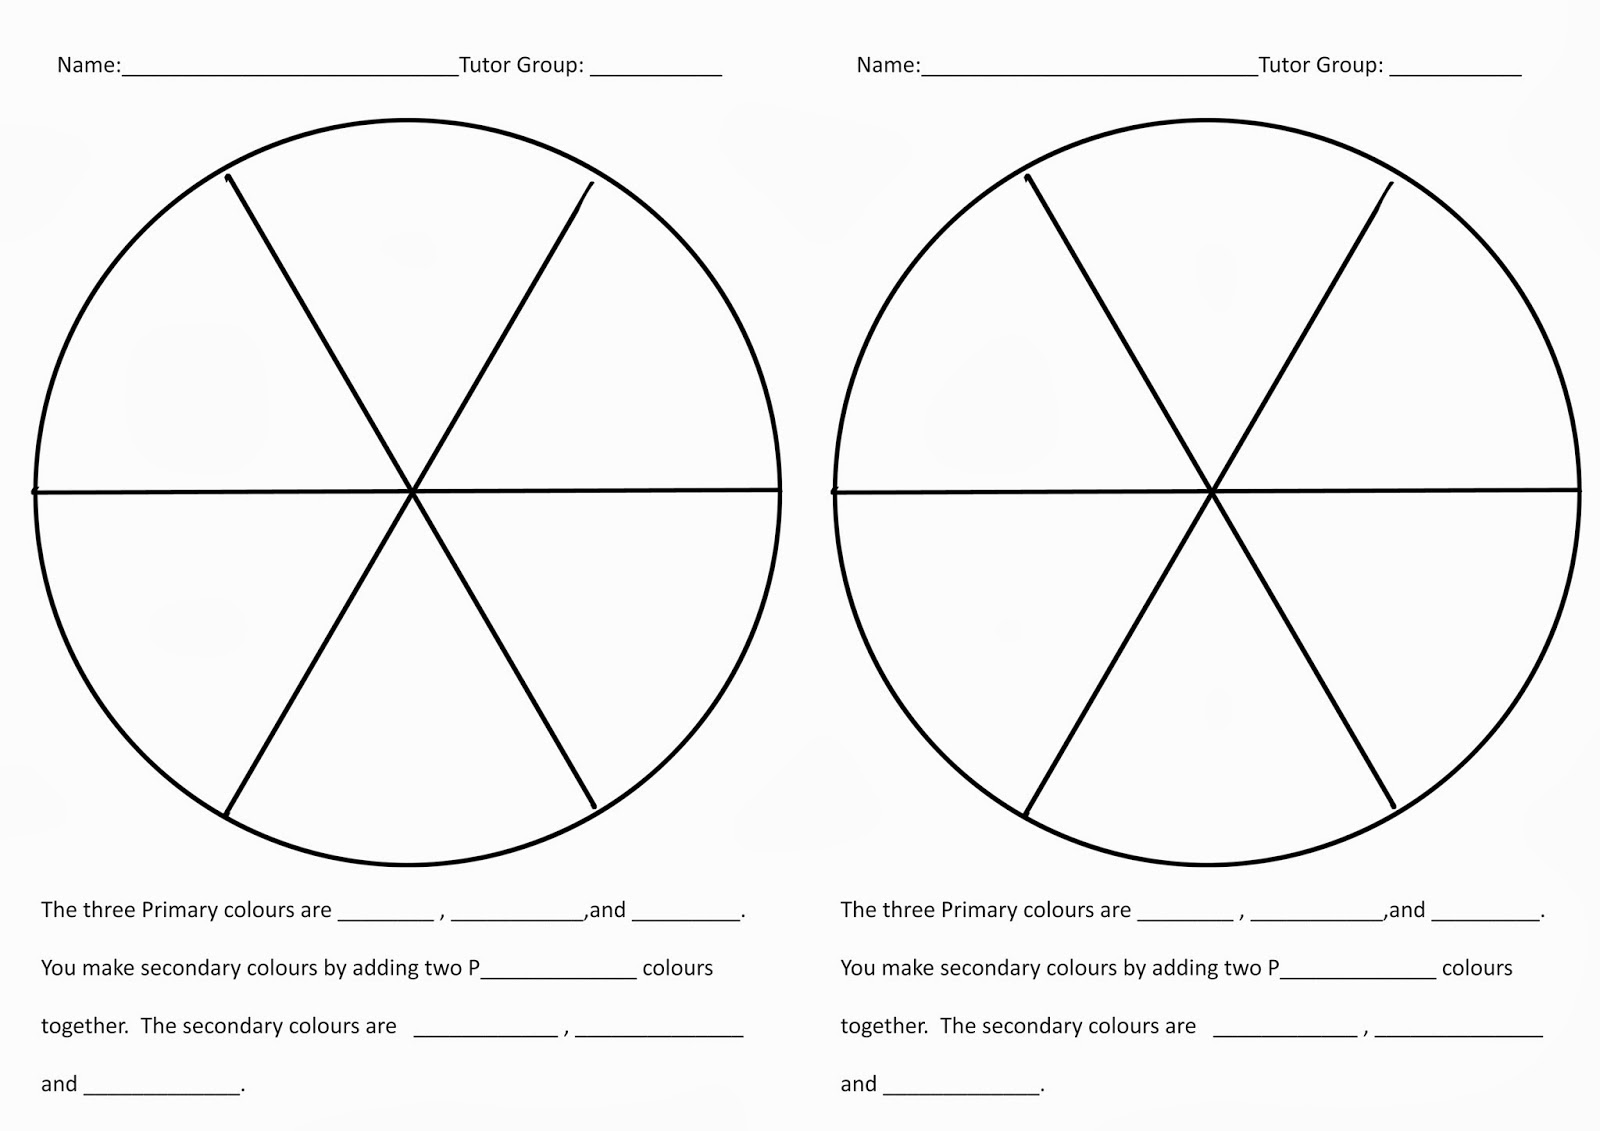 Color wheel worksheets for elementary - Art Color Theory Worksheet Color Wheel Worksheets Printable Colour Mixing In Year Herringthorpe Junior School